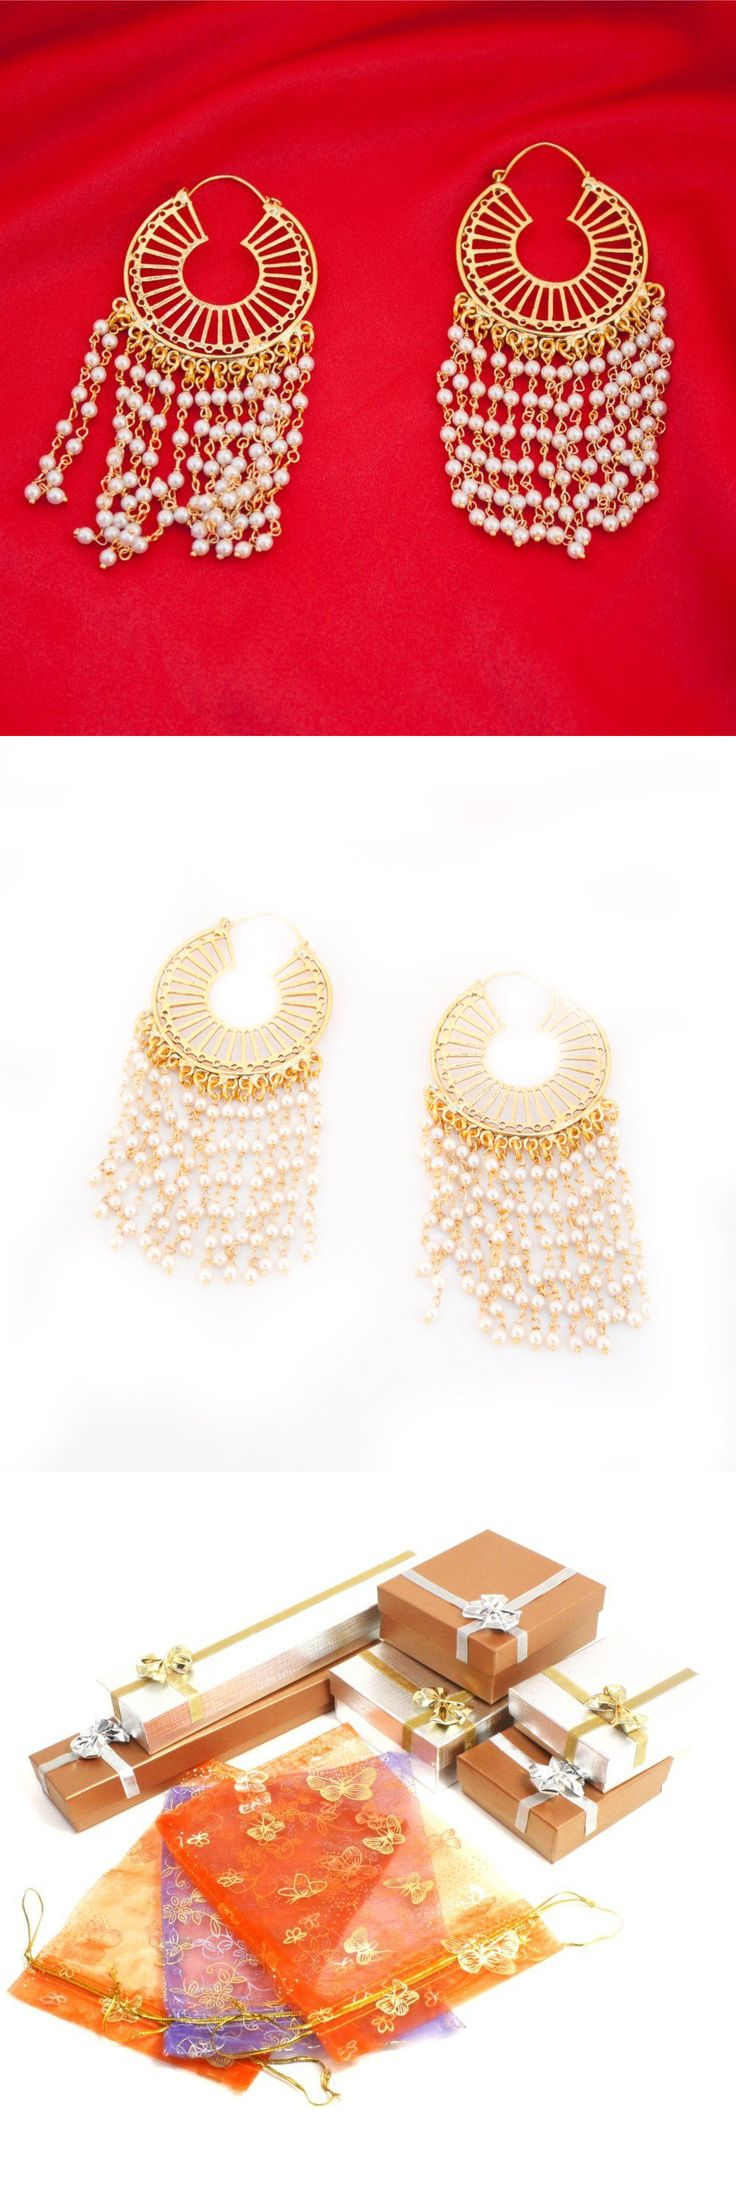 Earrings 98510: Pakistani Ethnic Indian Matte Gold Plated Hoop Earring With Chains And Pearls -> BUY IT NOW ONLY: $35 on eBay!